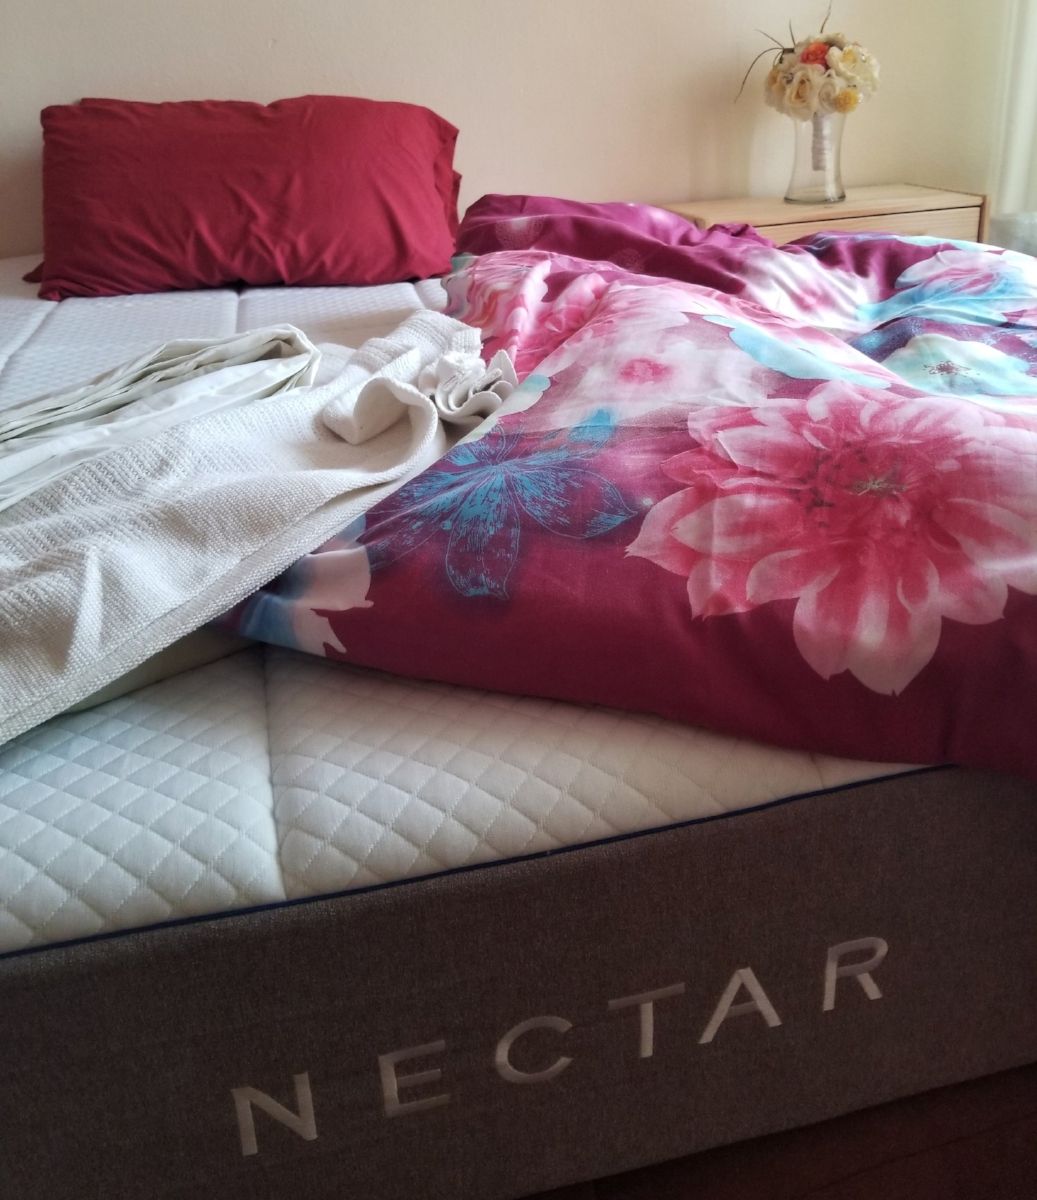 NECTAR mattresses are plush yet surprisingly firm, and has only one mission--your rest.